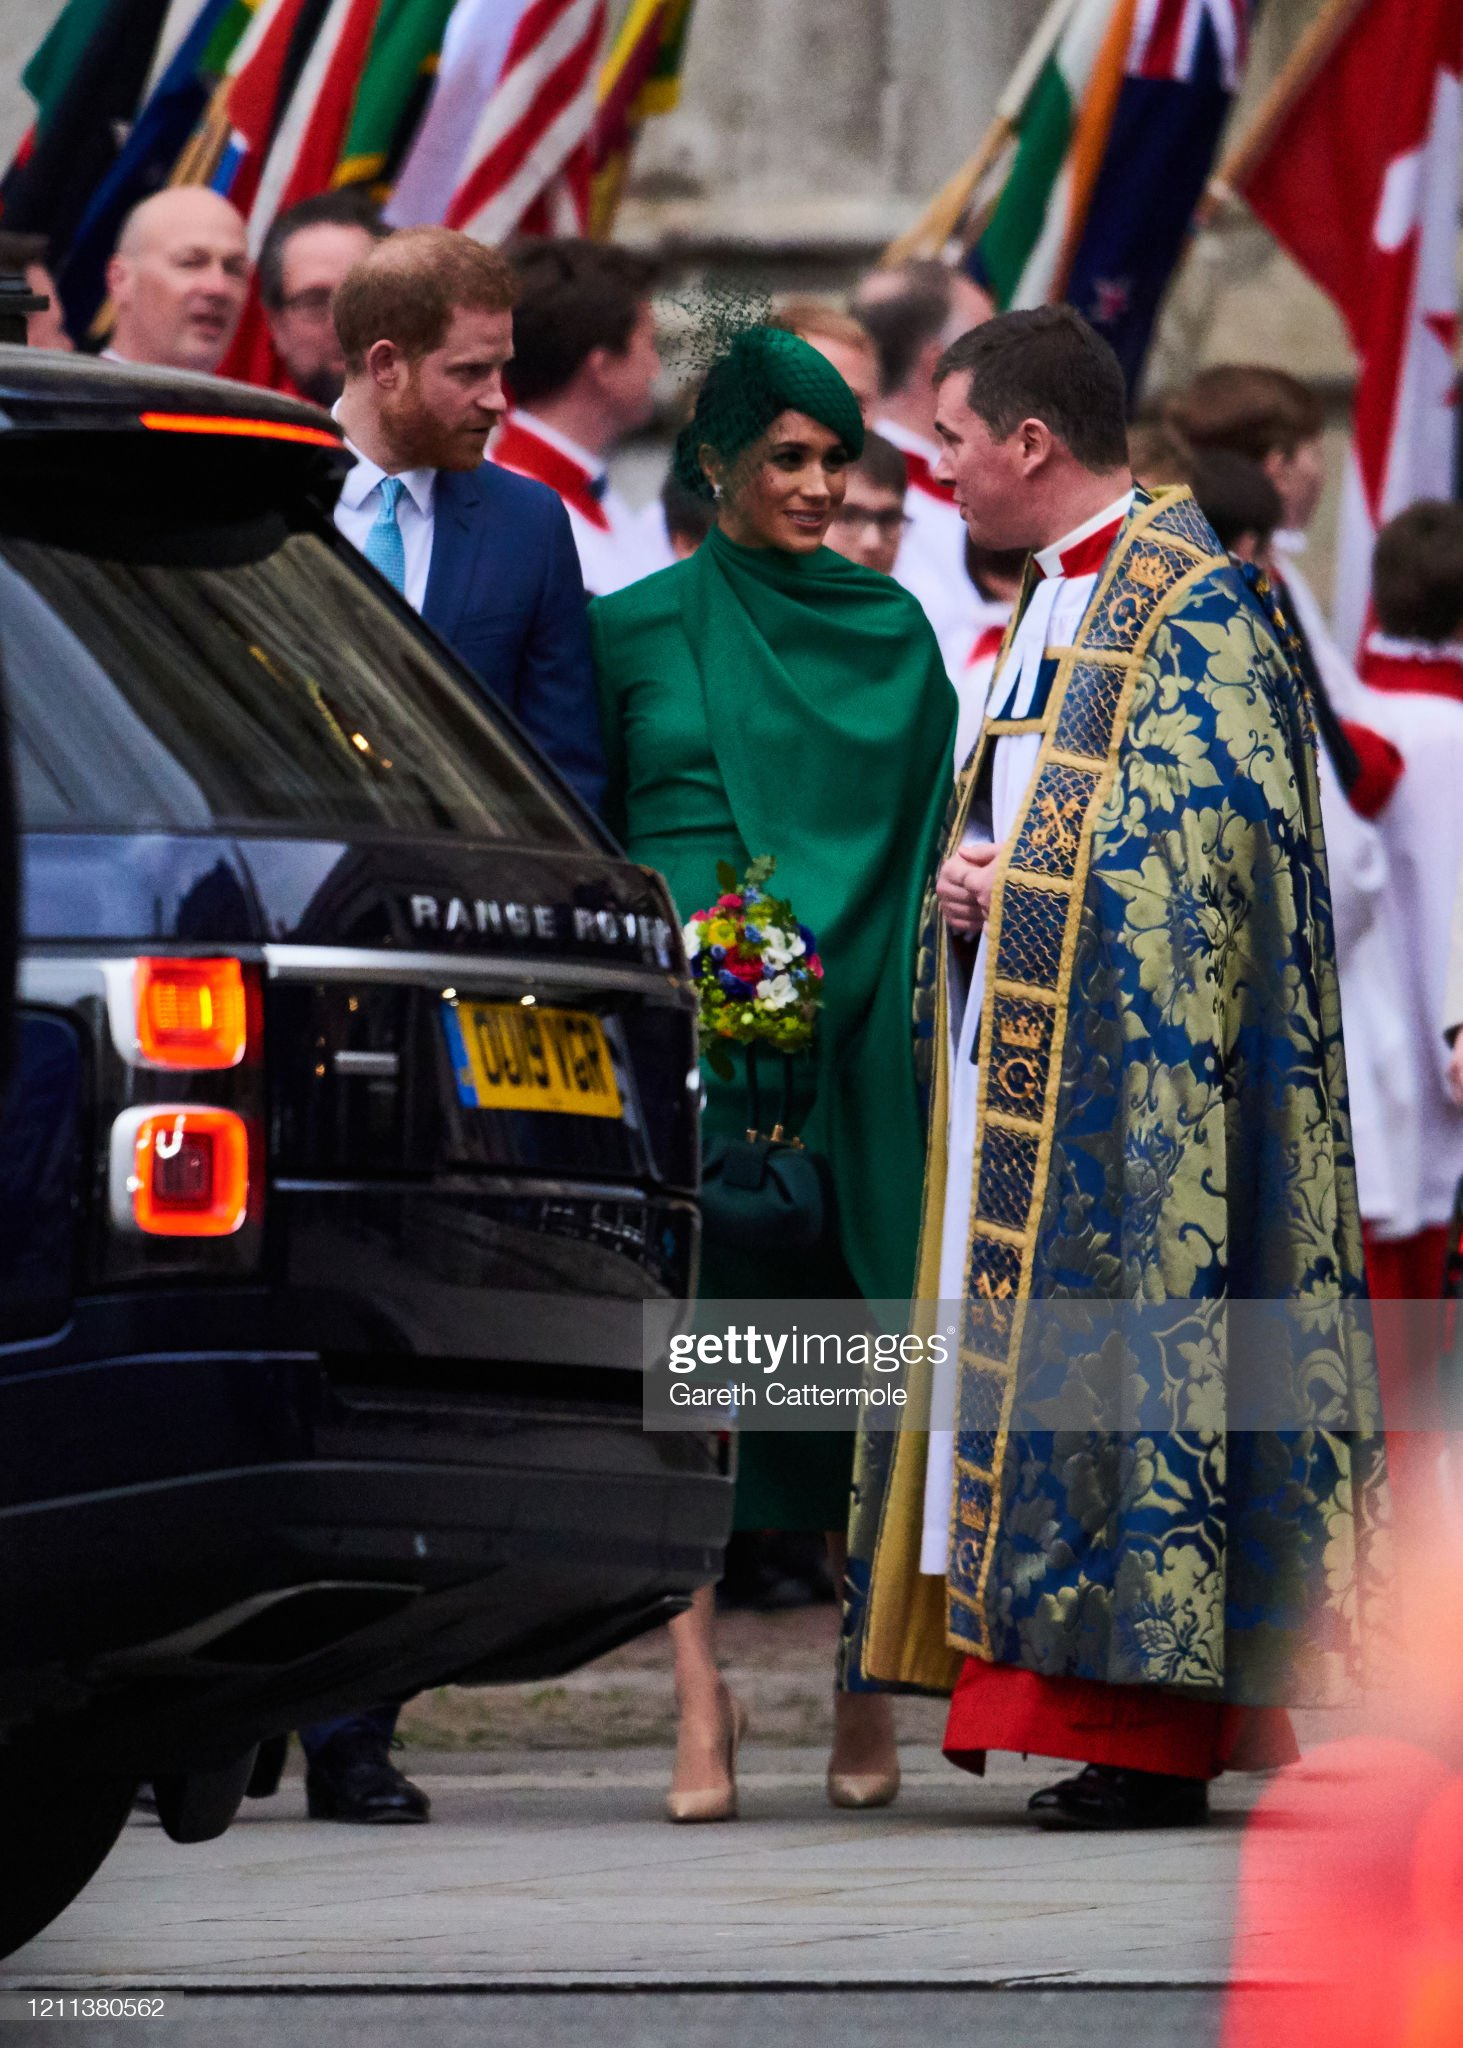 https://media.gettyimages.com/photos/prince-harry-duke-of-sussex-and-meghan-duchess-of-sussex-attend-the-picture-id1211380562?s=2048x2048